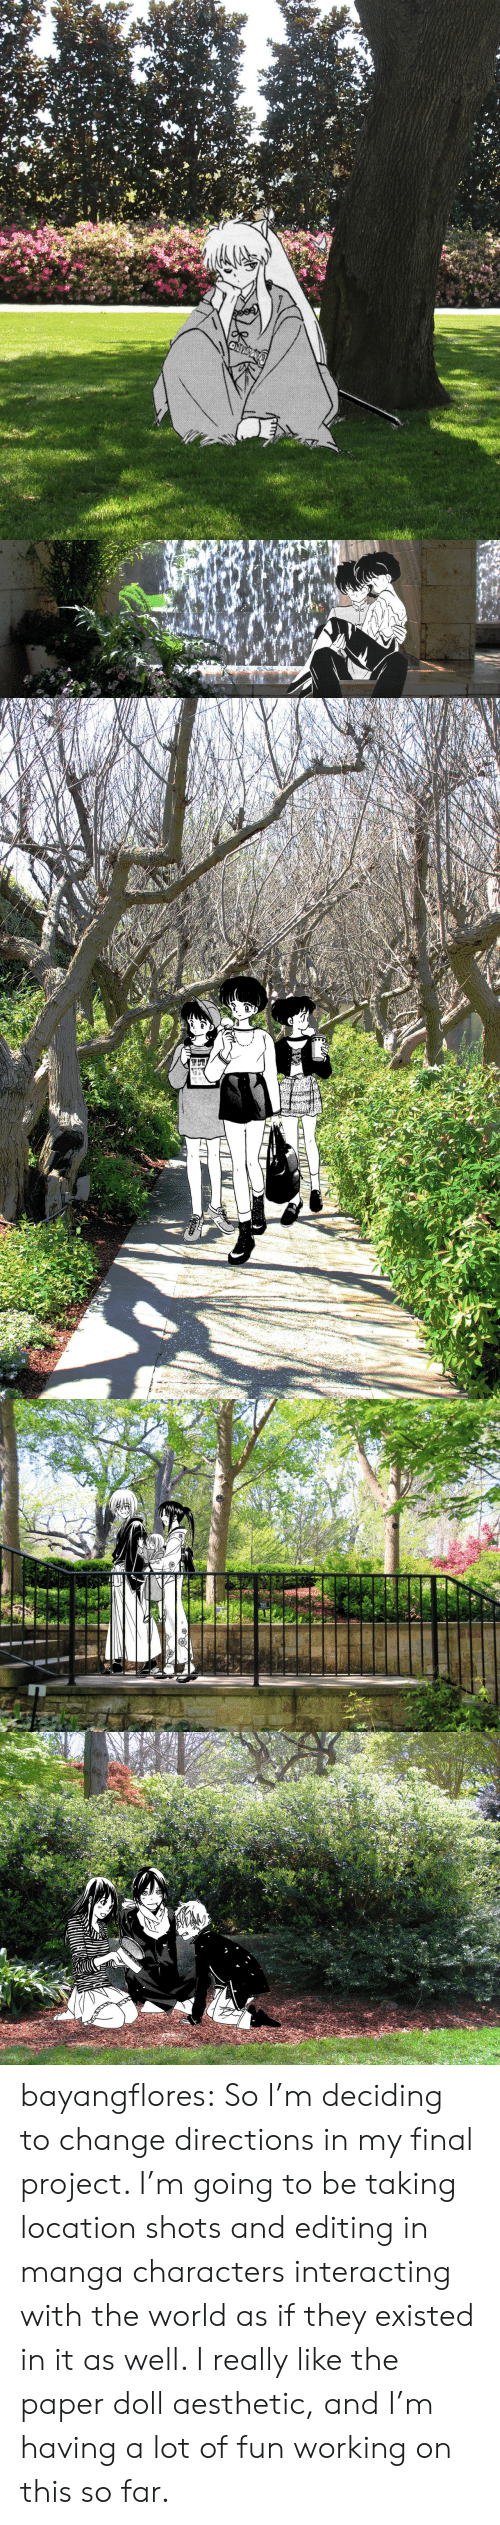 editing: ONLY   www bayangflores:  So I'm deciding to change directions in my final project. I'm going to be taking location shots and editing in manga characters interacting with the world as if they existed in it as well. I really like the paper doll aesthetic, and I'm having a lot of fun working on this so far.